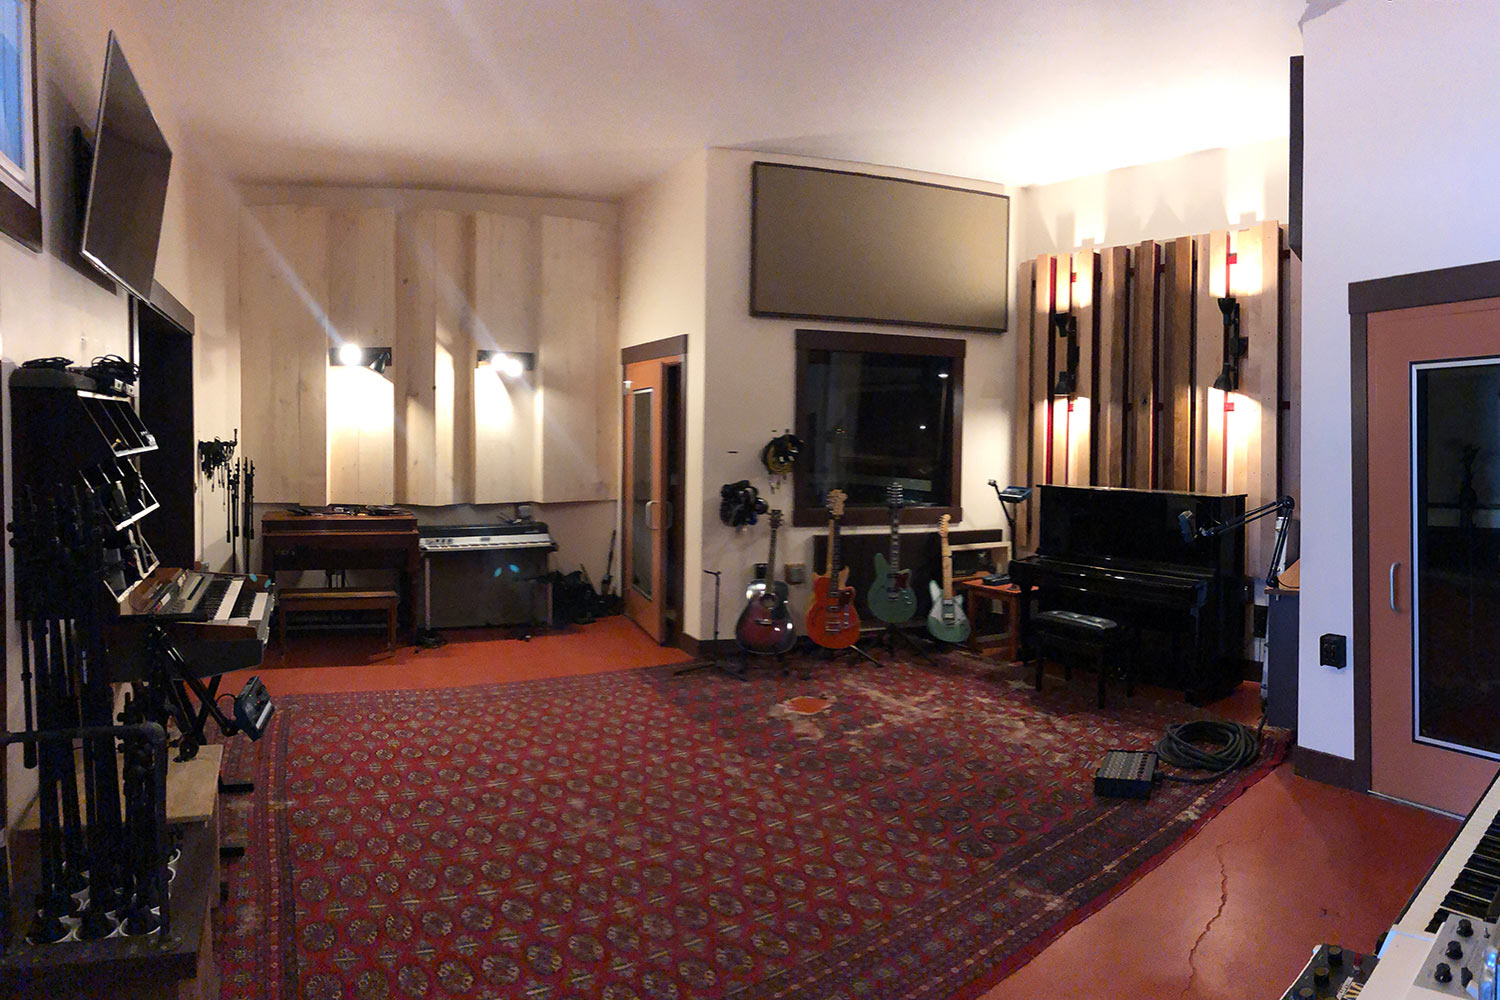 Gear guru studio owner PK Pandey Mad Oak Studios. Beautiful Control Room with Symphonic Acoustics custom speakers. WSDG was the only recording studio design firm considered for this project. Live room.